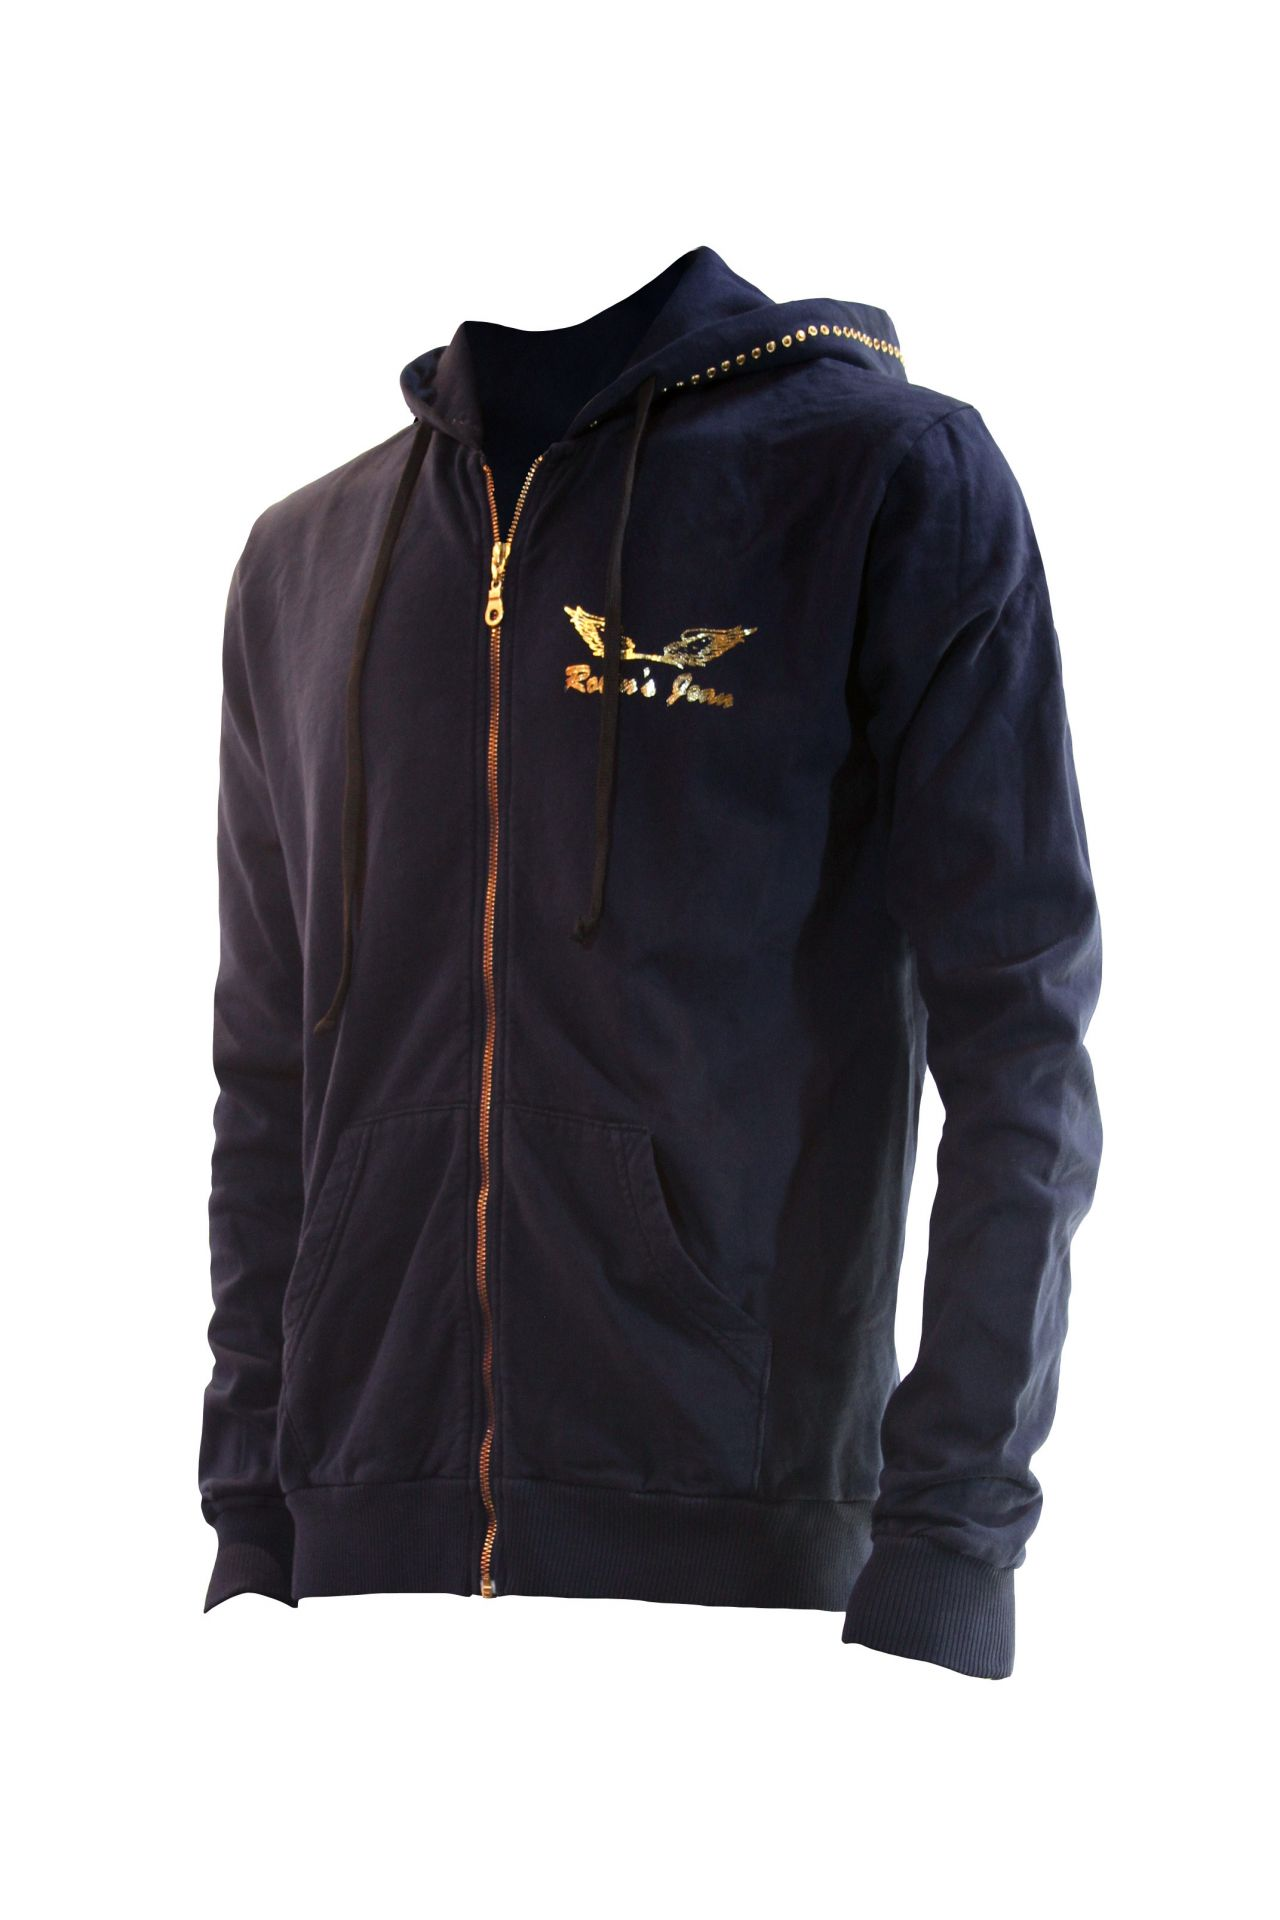 NAVY HOOD WITH WINGS AND SW